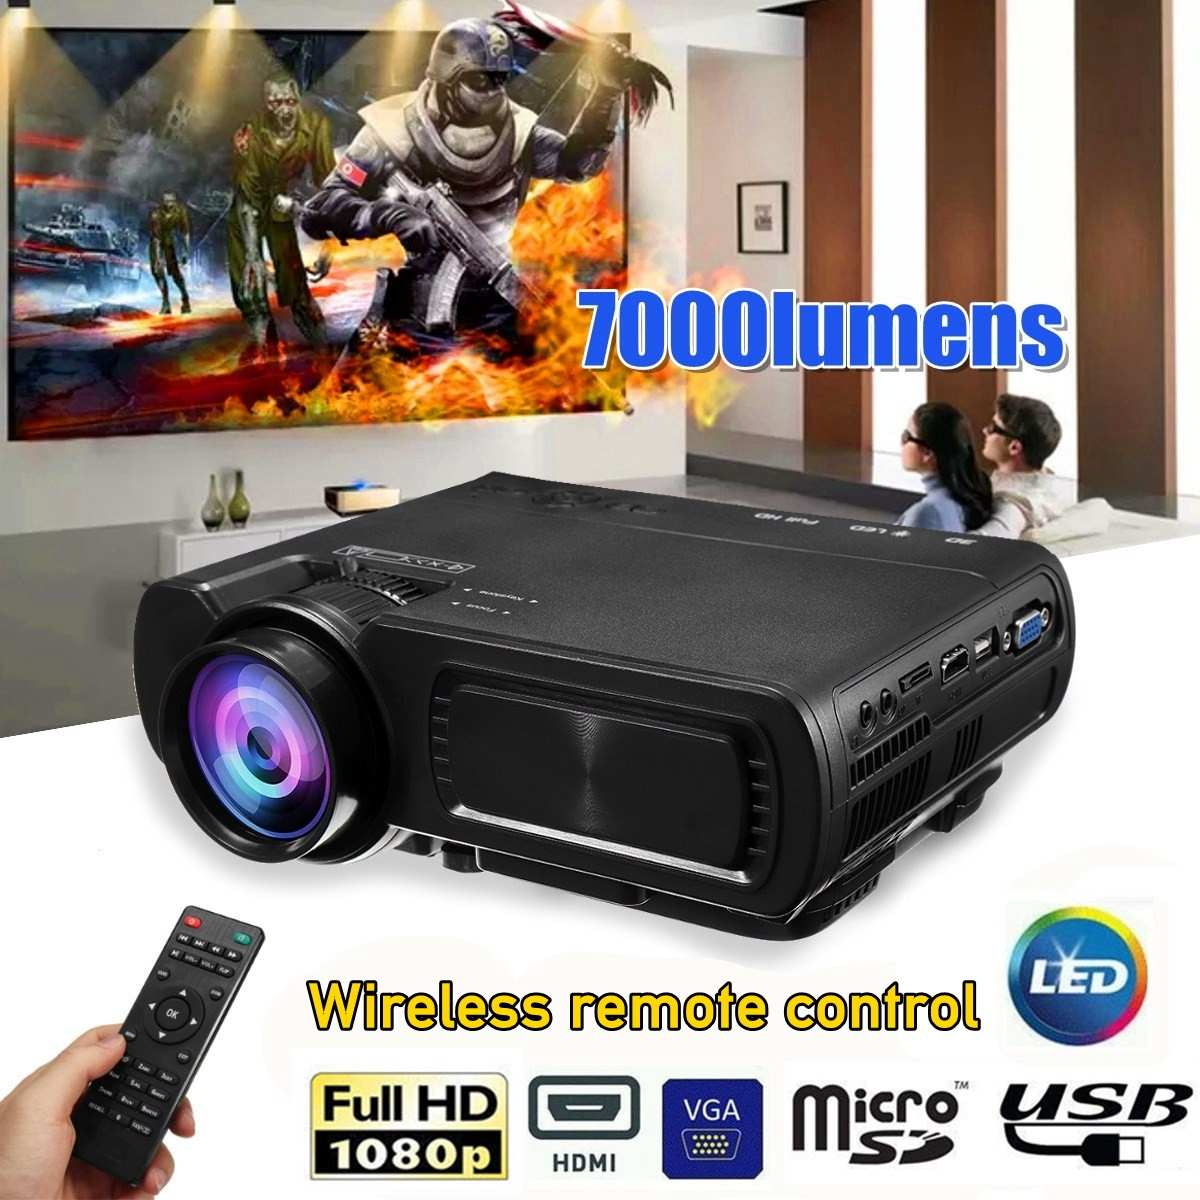 1080P 3D <font><b>7000</b></font> <font><b>Lumen</b></font> LED Projector Home Theater Multimedia HDMI/USB/VGA image